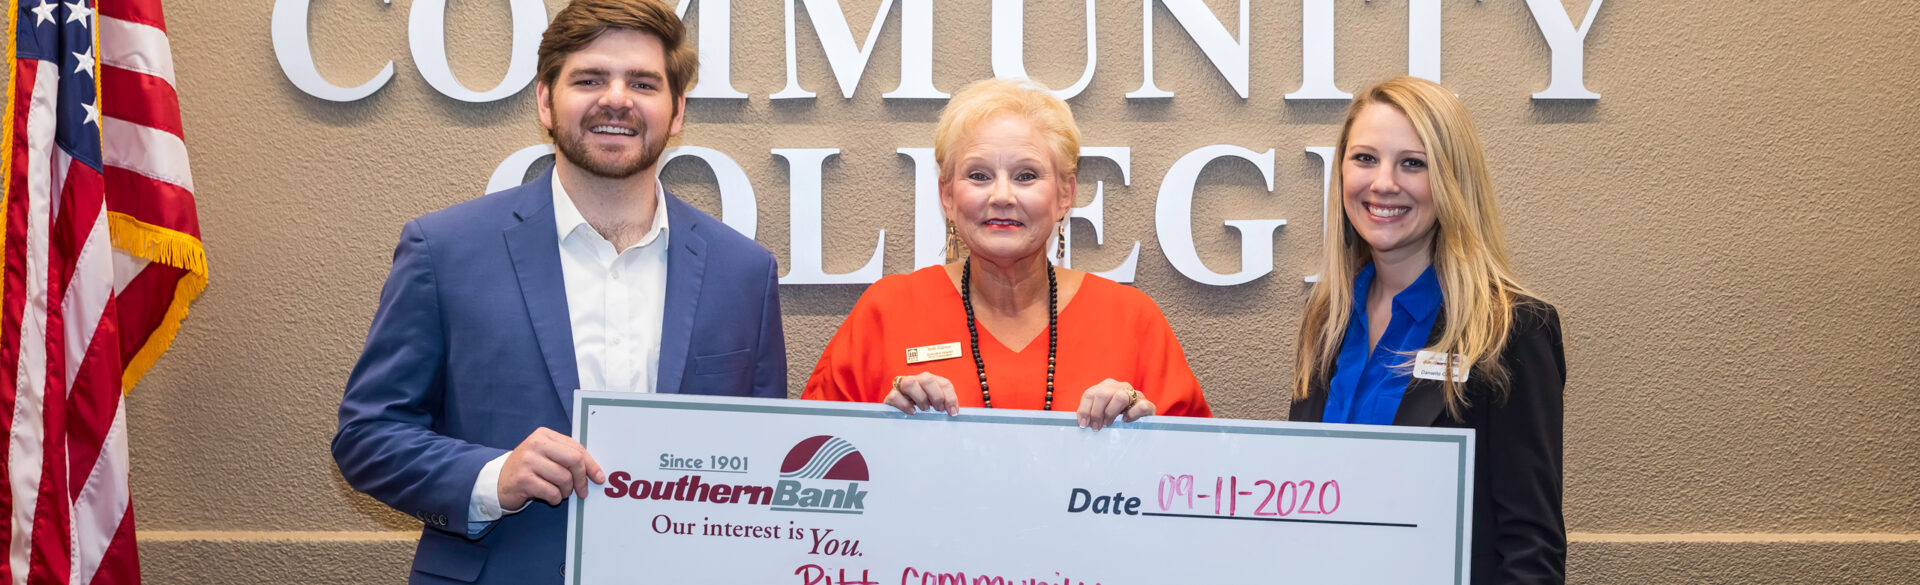 Southern Bank's Austin Parker (left) and Danielle Cooper (right) present a $25,000-check to PCC Foundation Executive Director Beth Sigmon during a Sept. 11 visit to the Pitt campus.